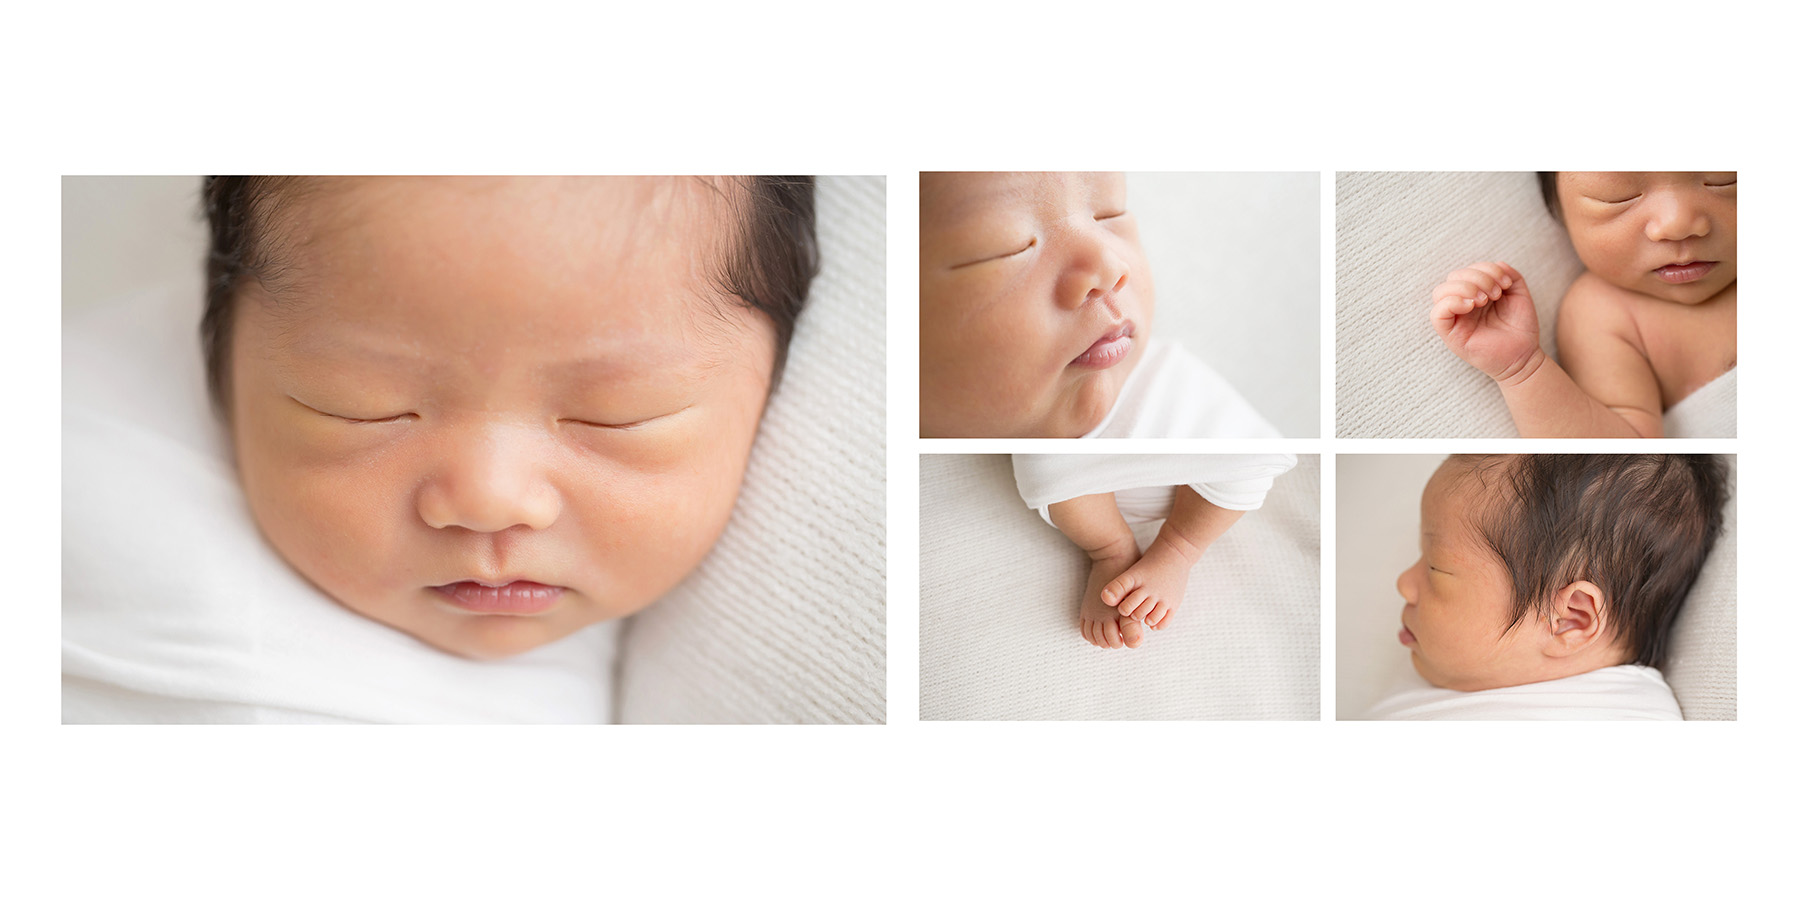 Louisville KY Newborn Photographer | Julie Brock Photography | Newborn Album for Baby's First Year | Family Photography Louisville | Top Maternity Photographers.jpg